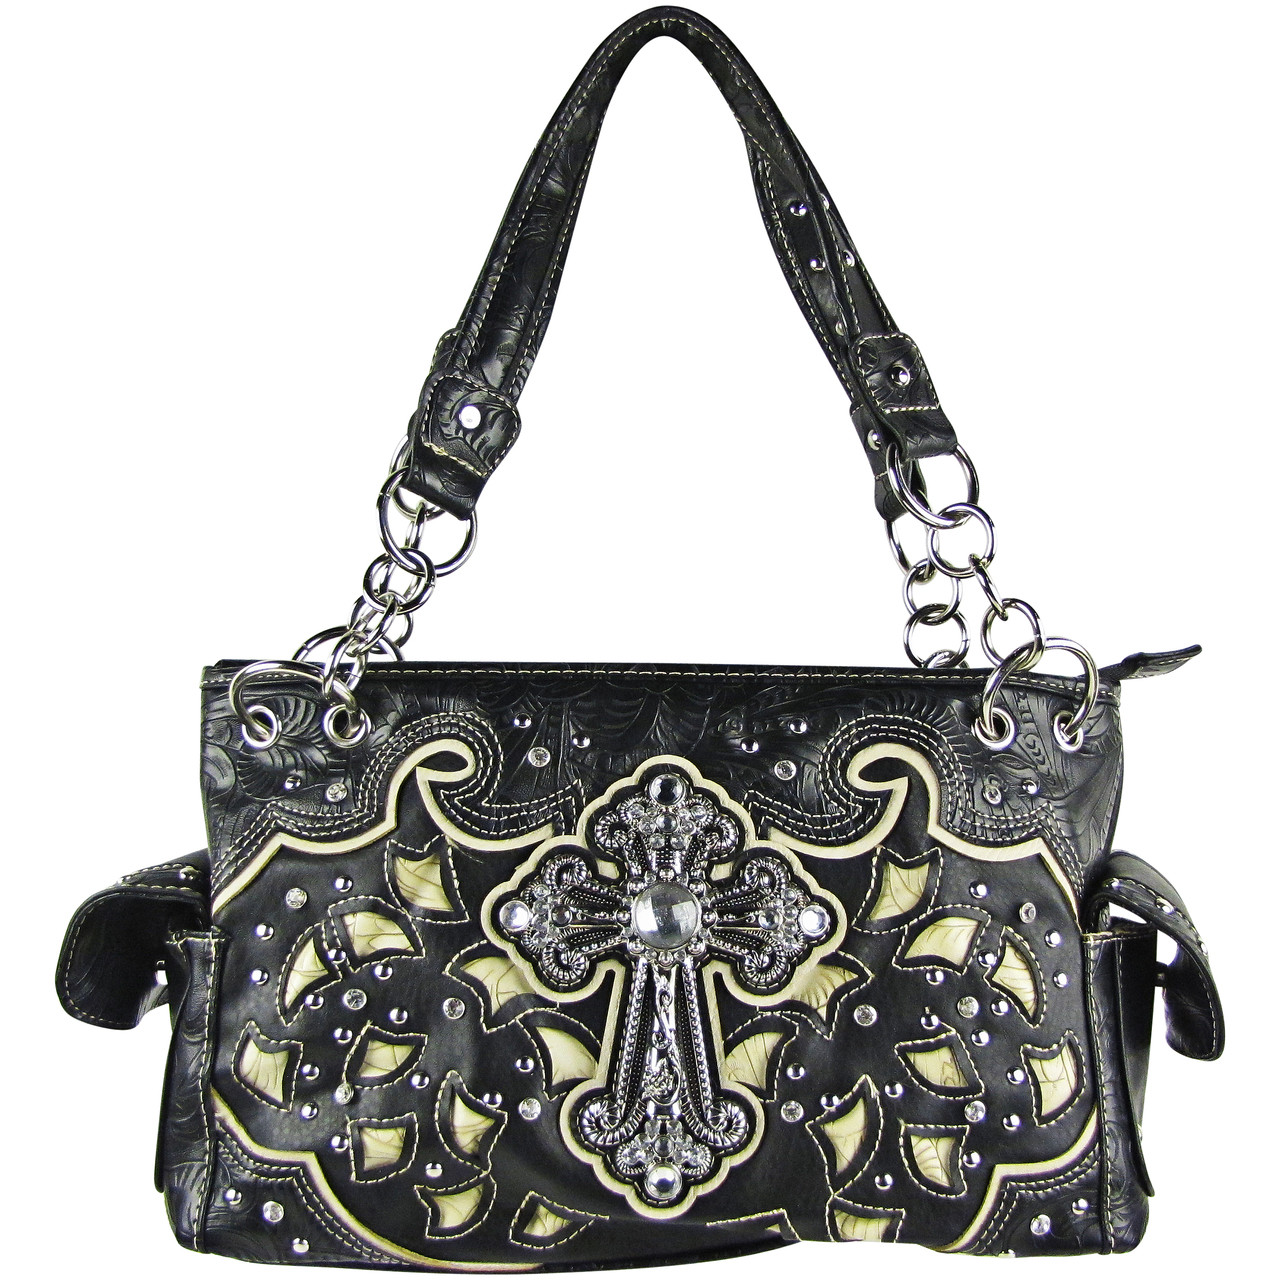 BLACK TOOLED RHINESTONE CROSS STITCHED LOOK SHOULDER HANDBAG HB1-68LCRBLK